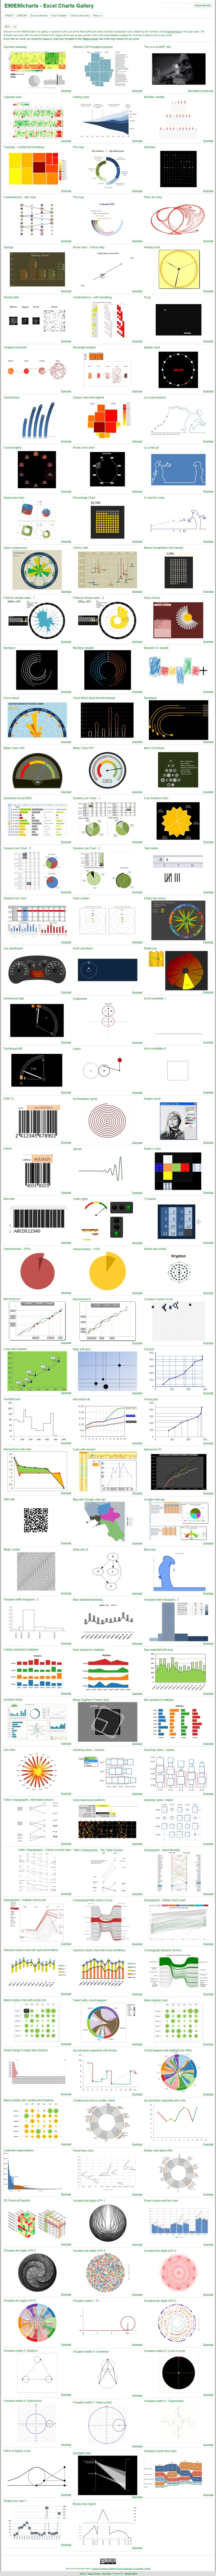 Free download graphs and charts